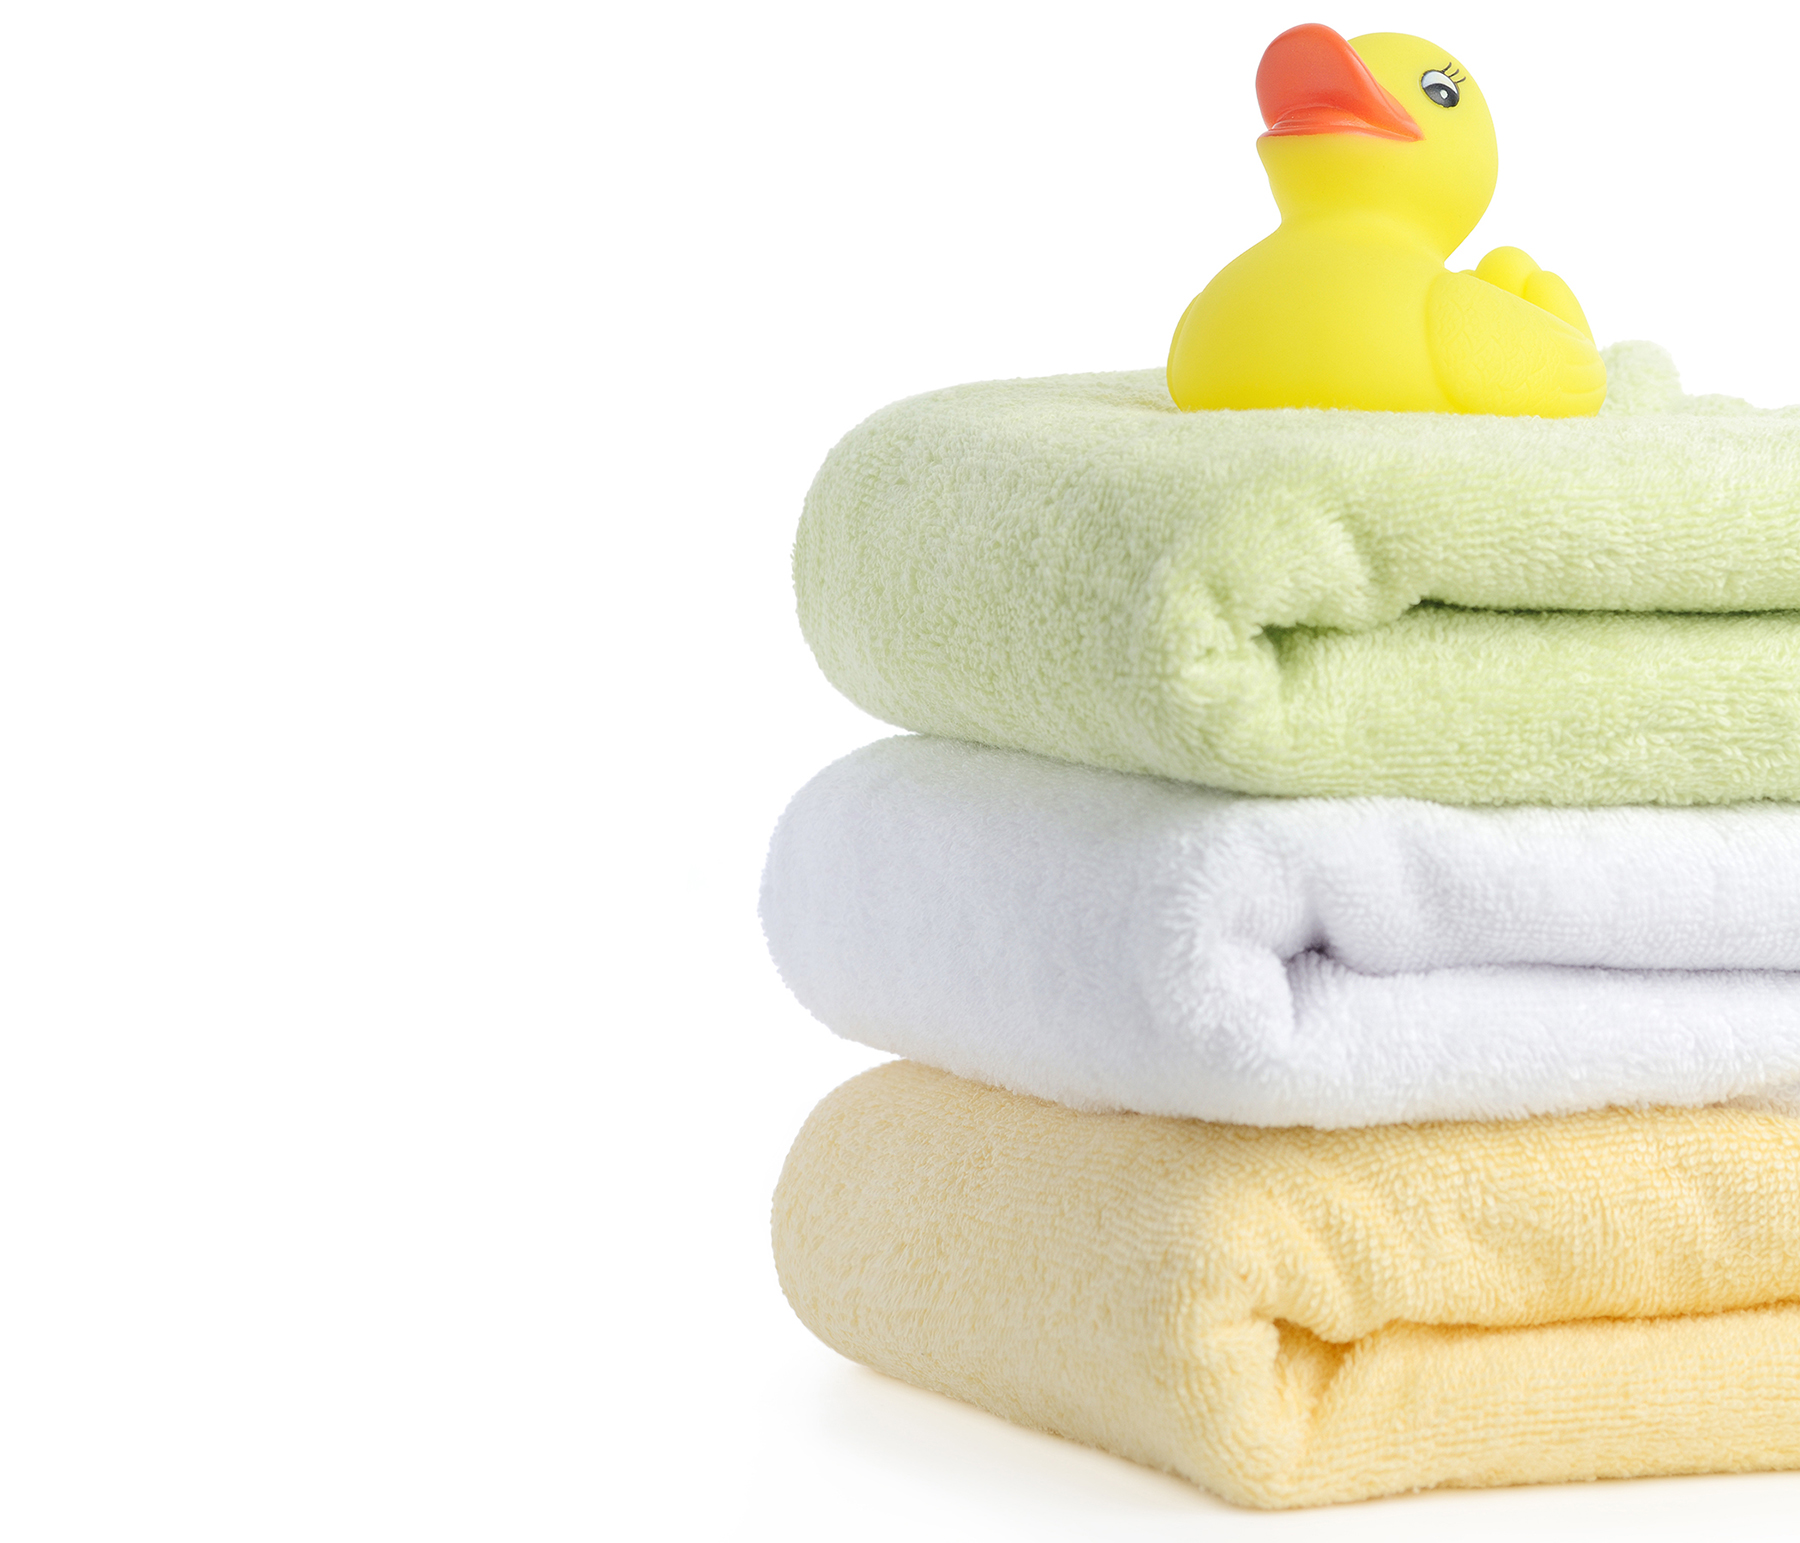 Towels and a rubber duckie